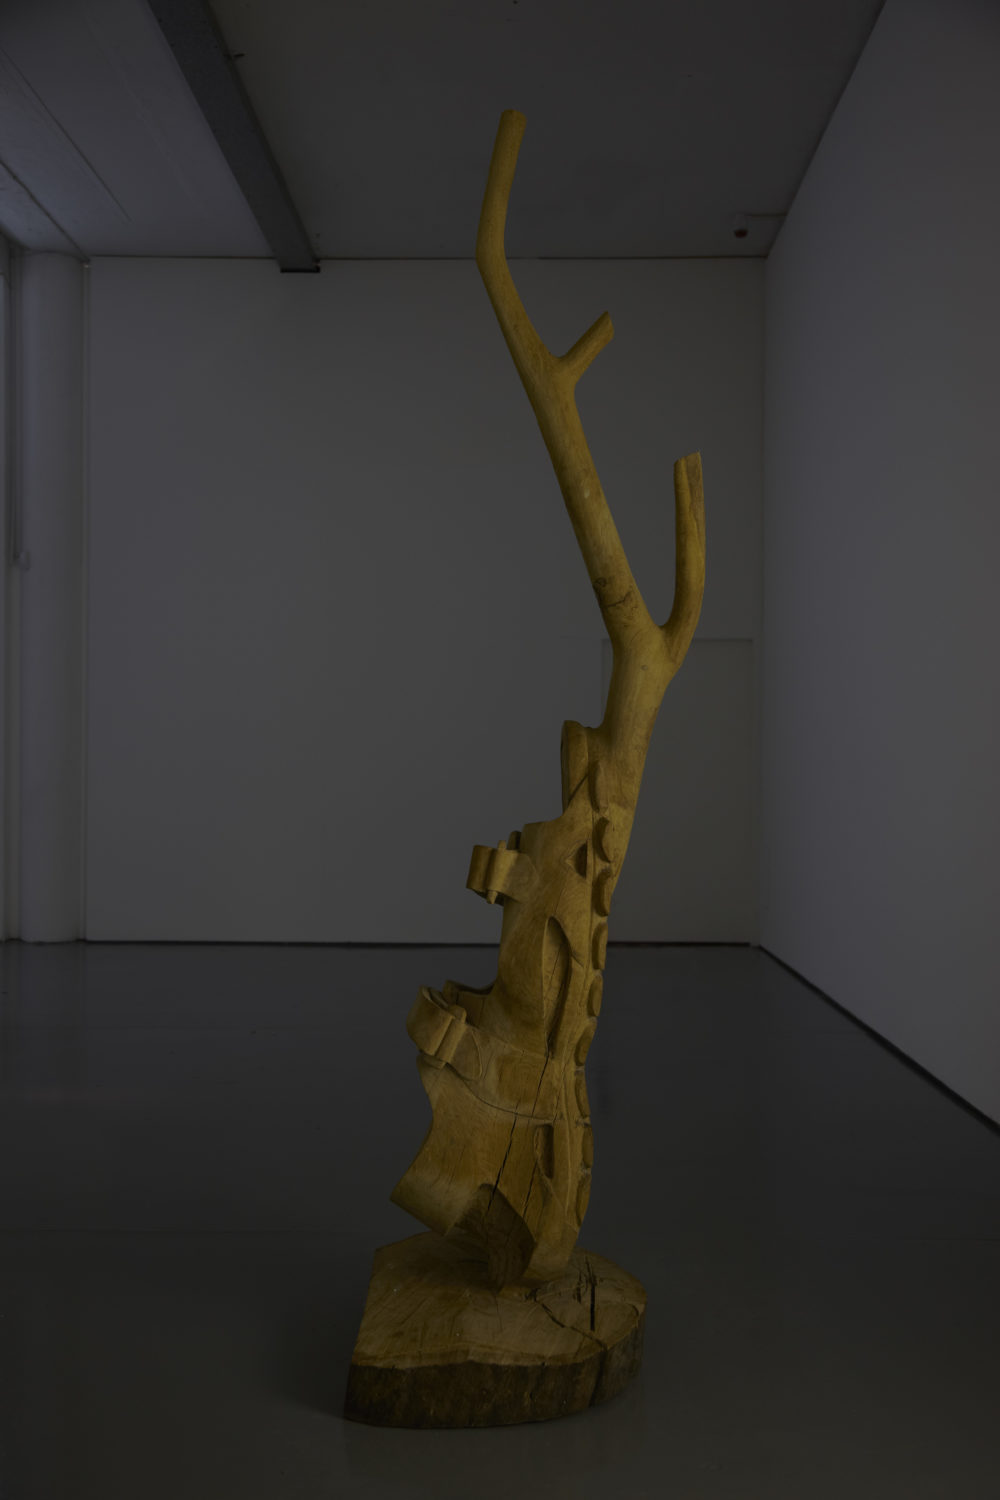 Installation view of Crêpe Suzette, (2012). Abstract wooden carving from a tree painted yellow.